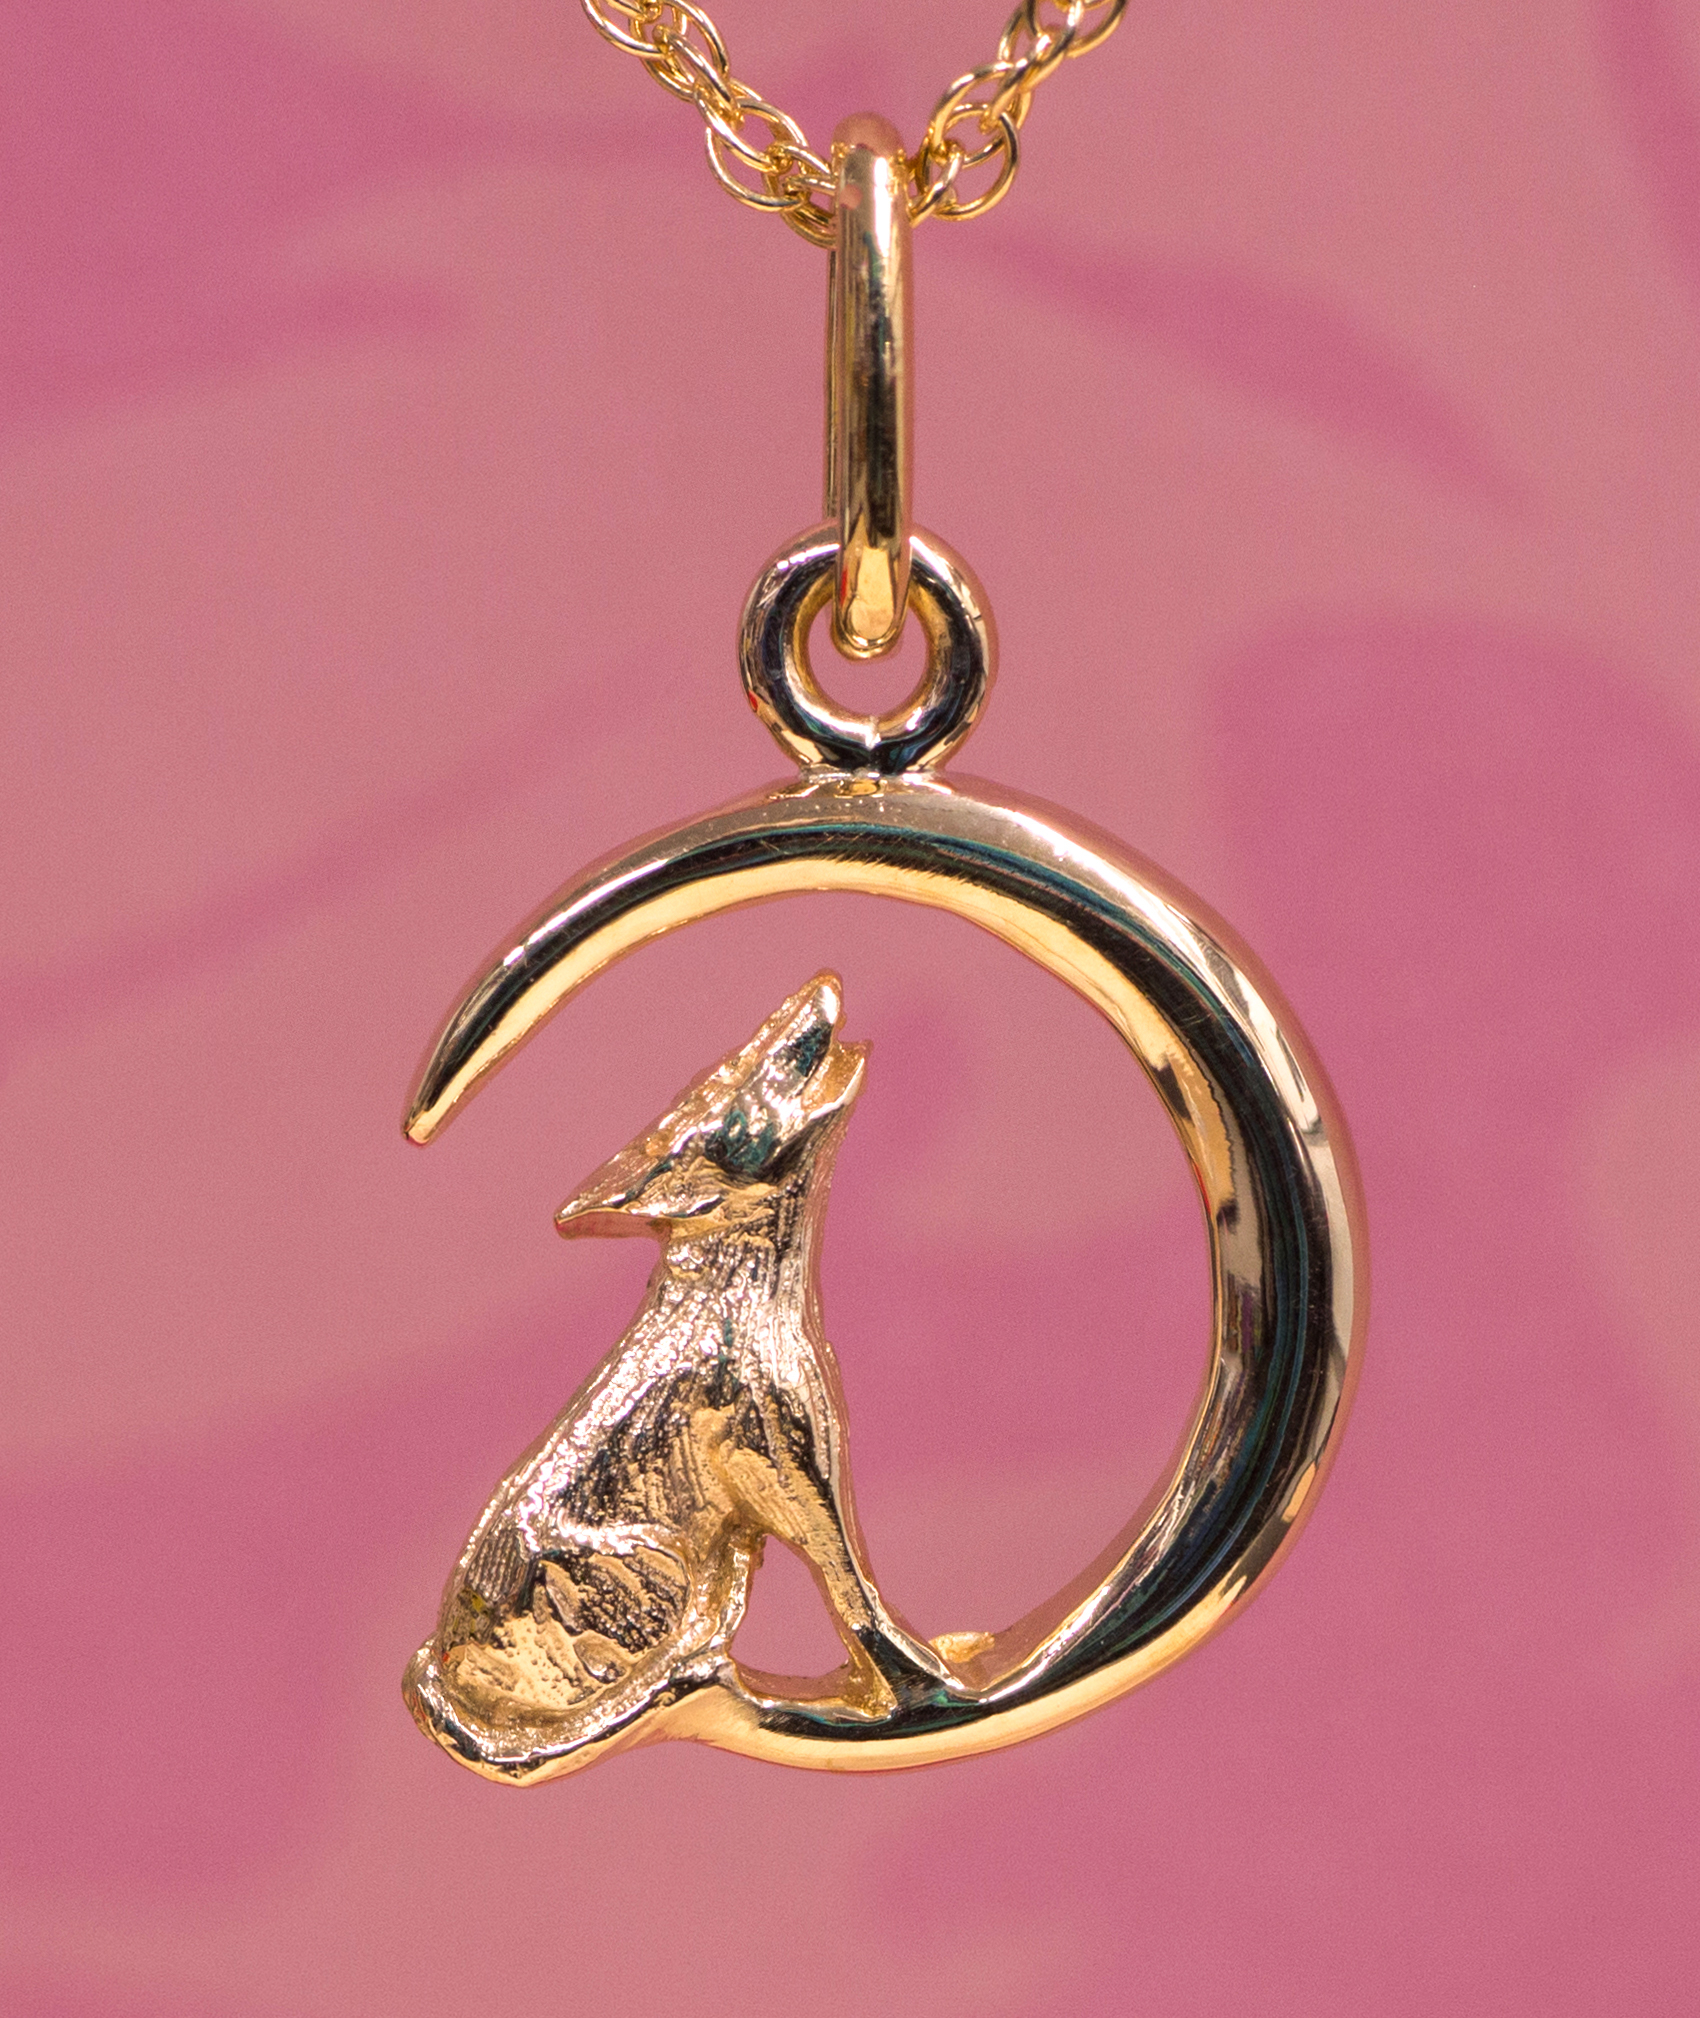 Wild Alaska Howling Wolf Pendant Crafted in 14kt Yellow Gold.